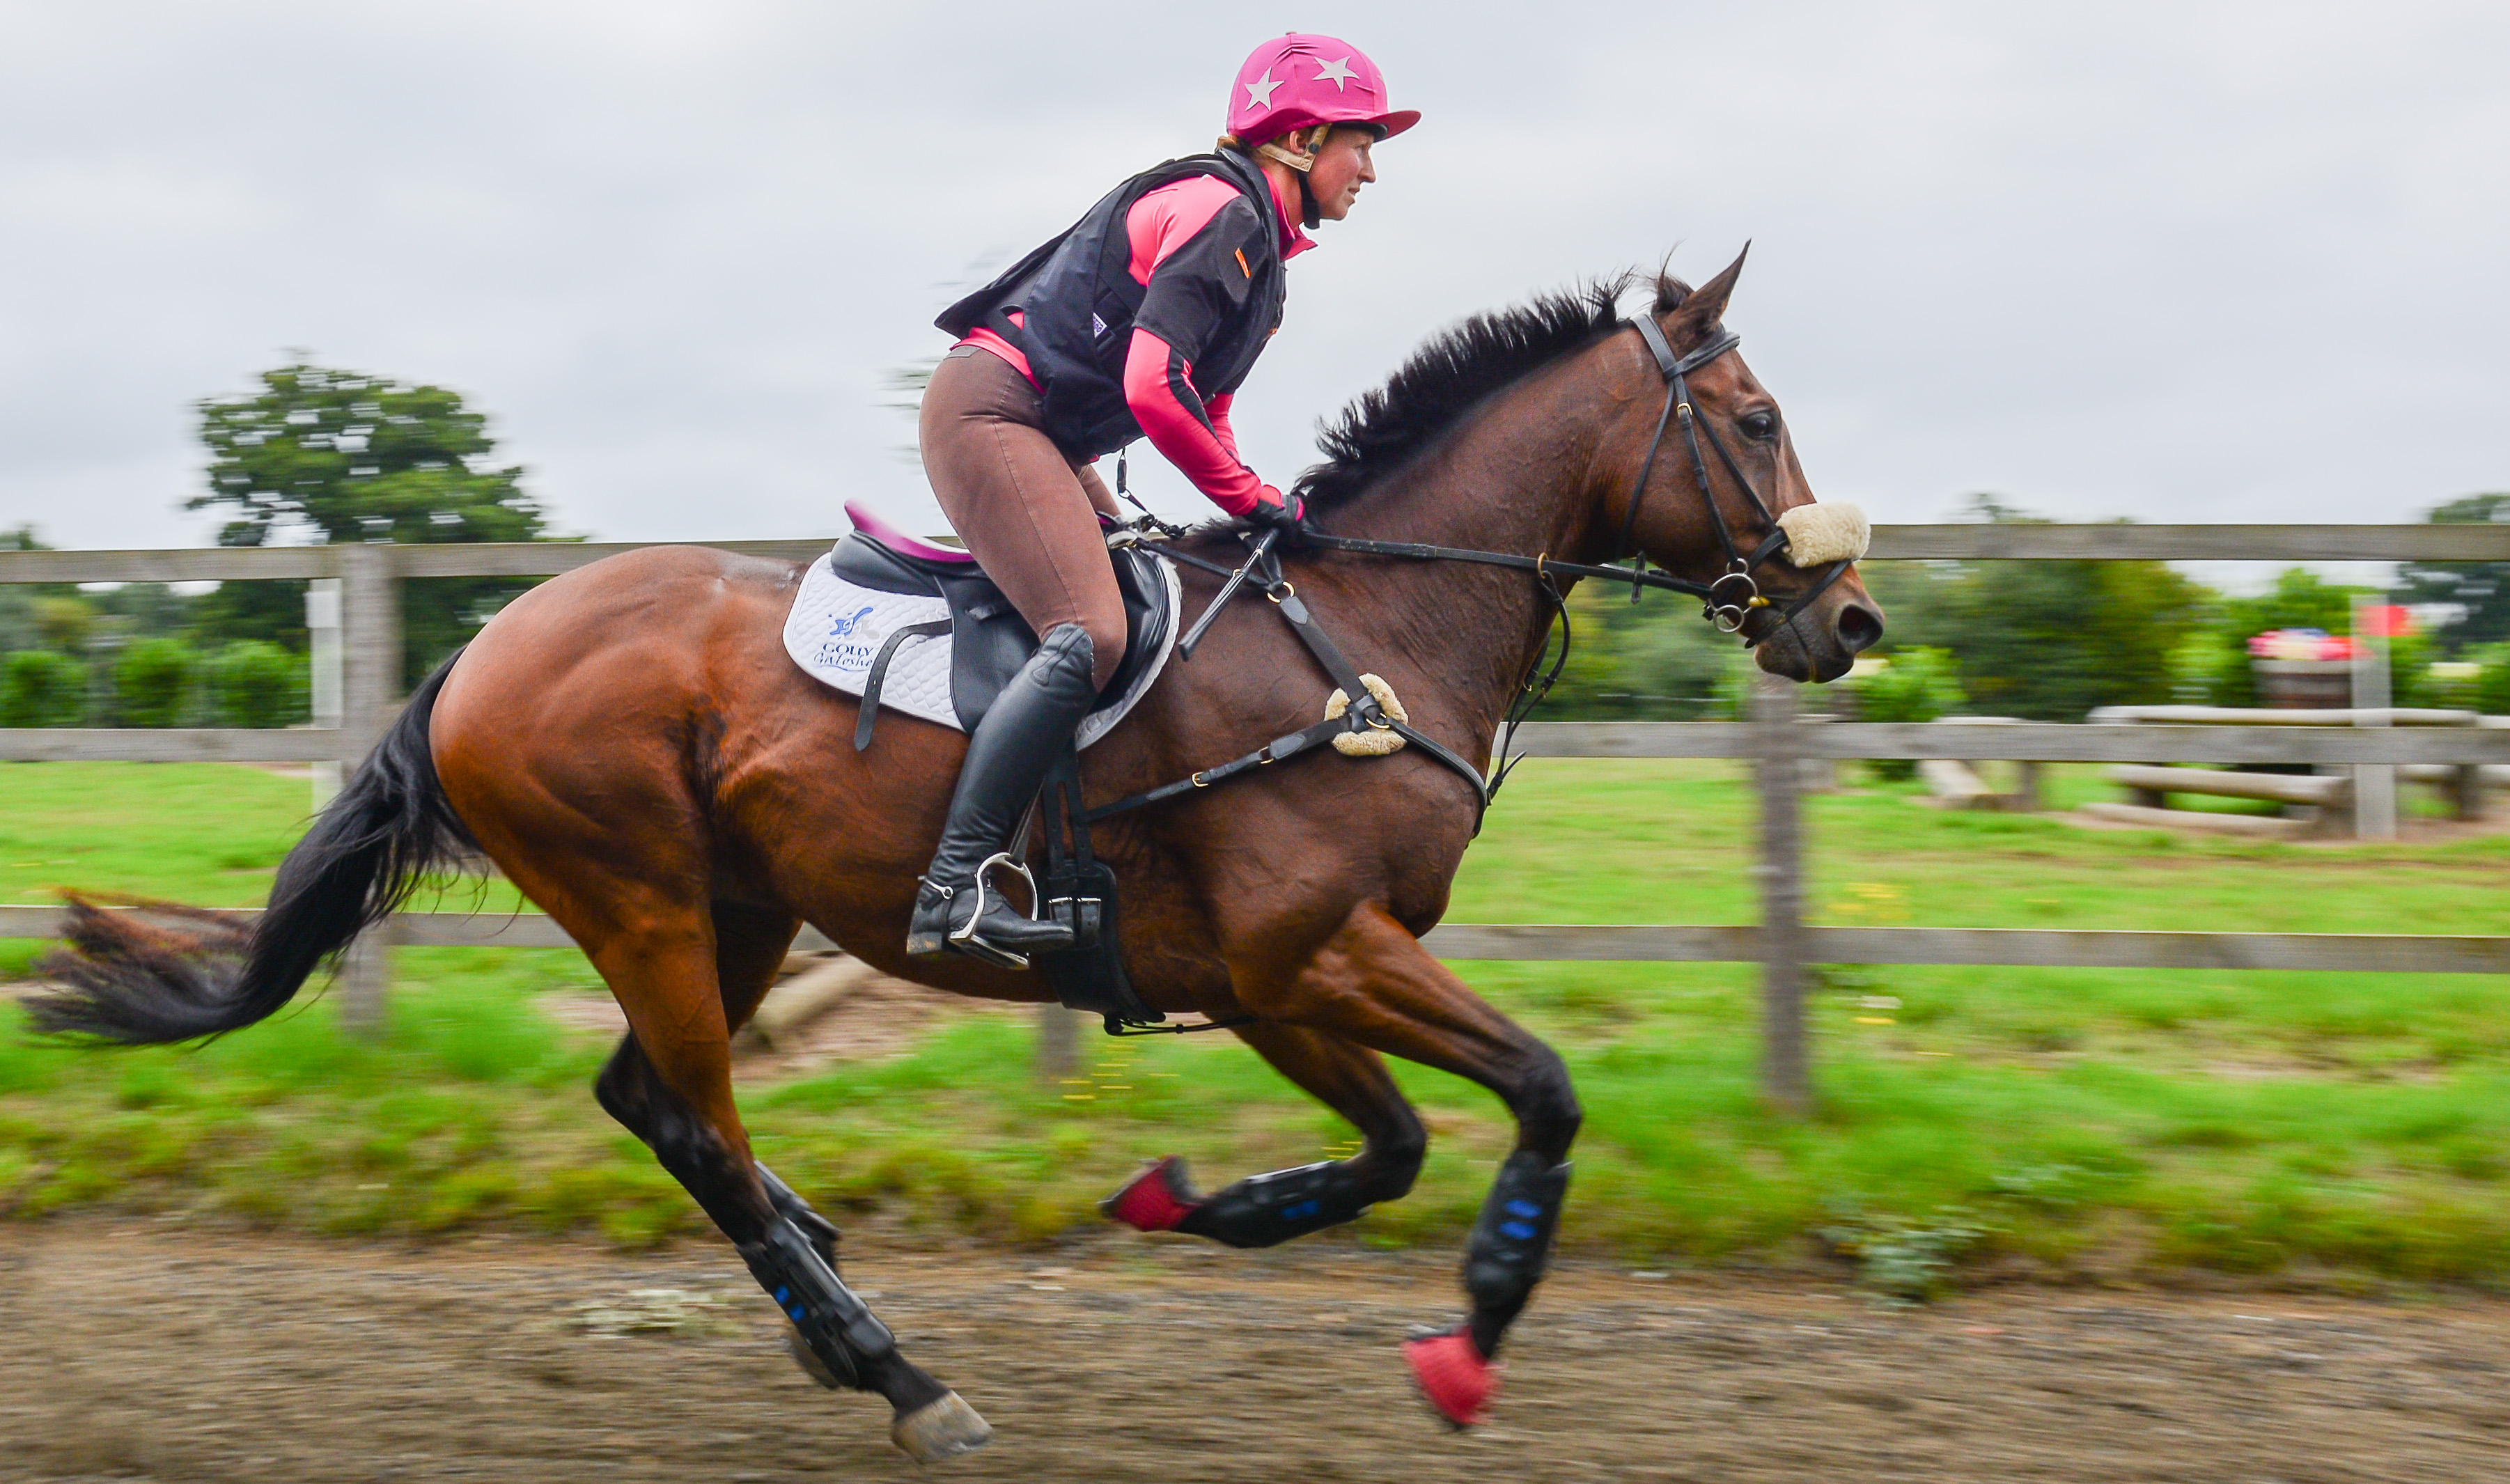 Performance Improvement Victoria Bax. Photo by Thoroughbred Sports Photography